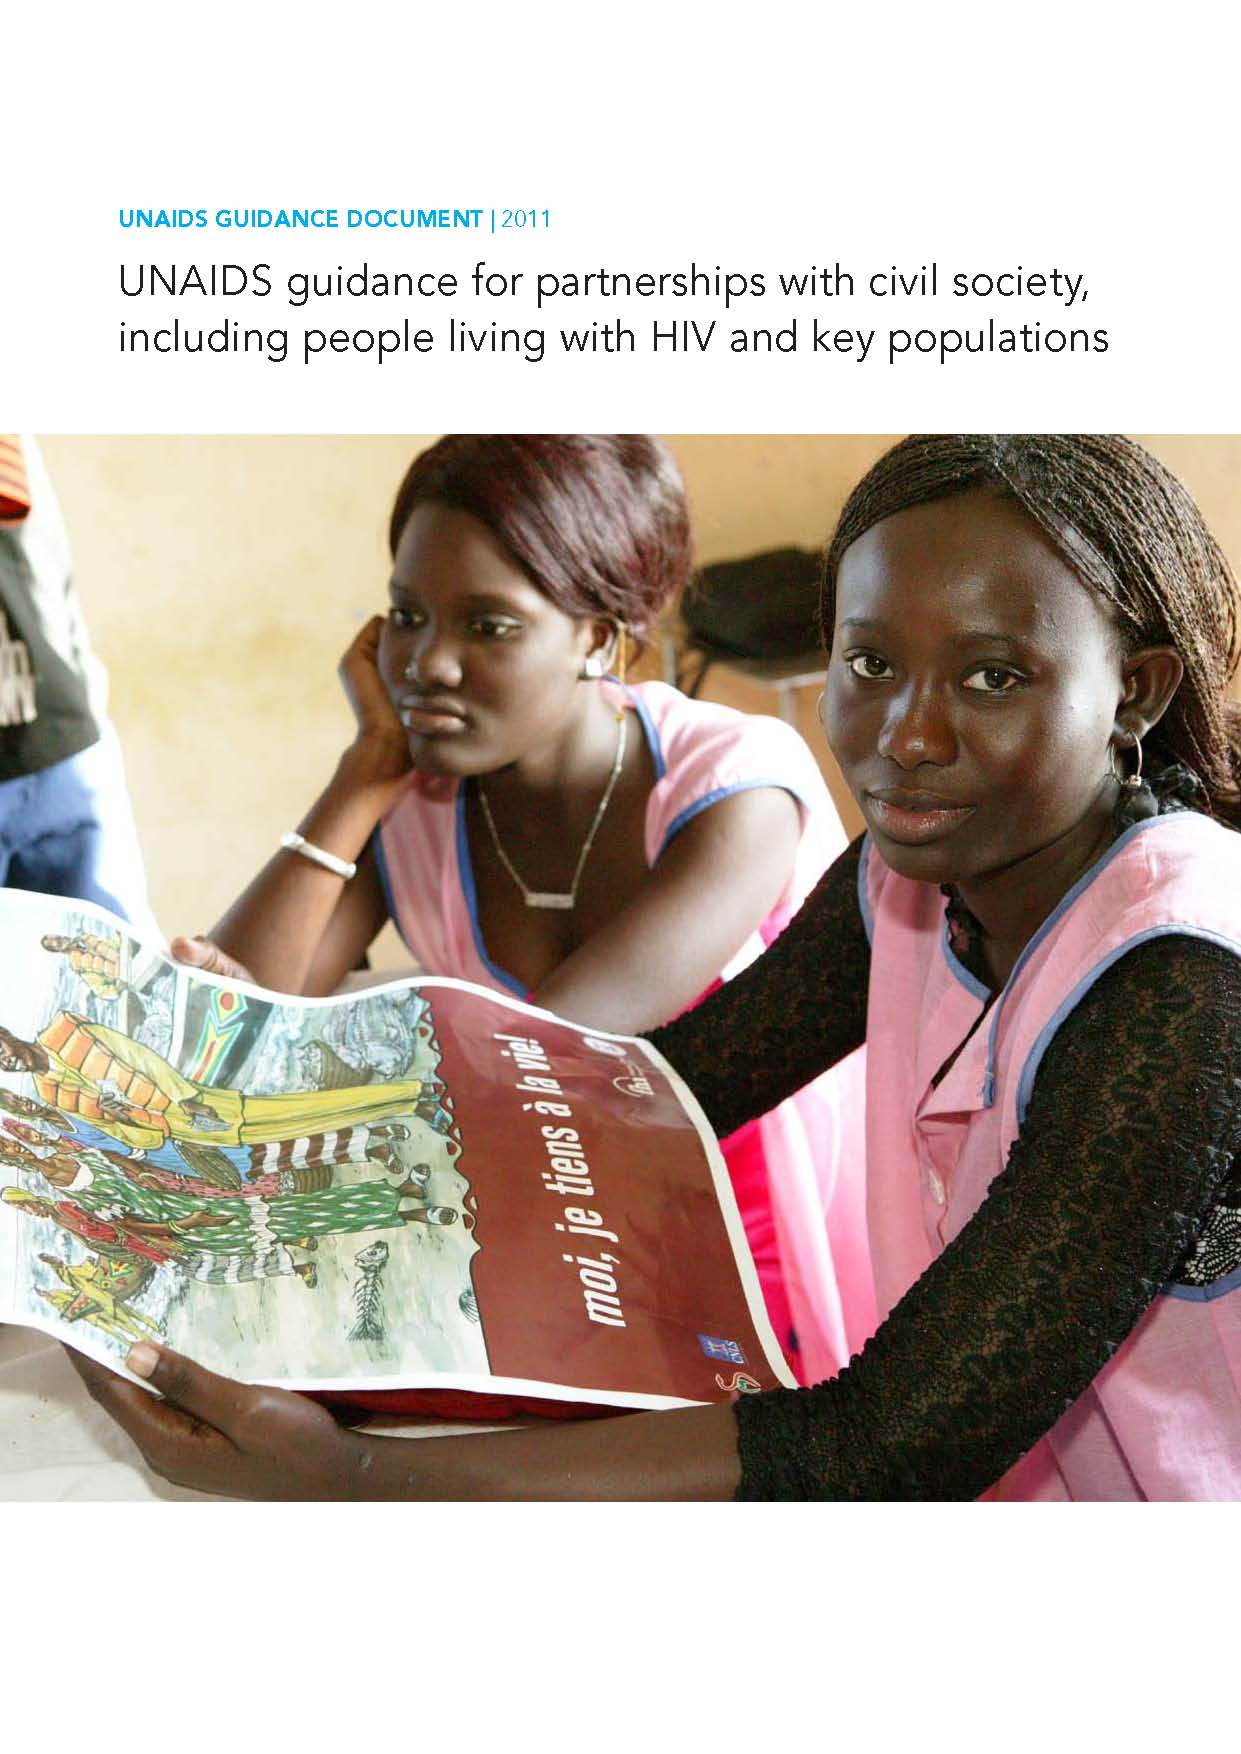 UNAIDS guidance for partnerships with civil society, including people living with HIV and key populations